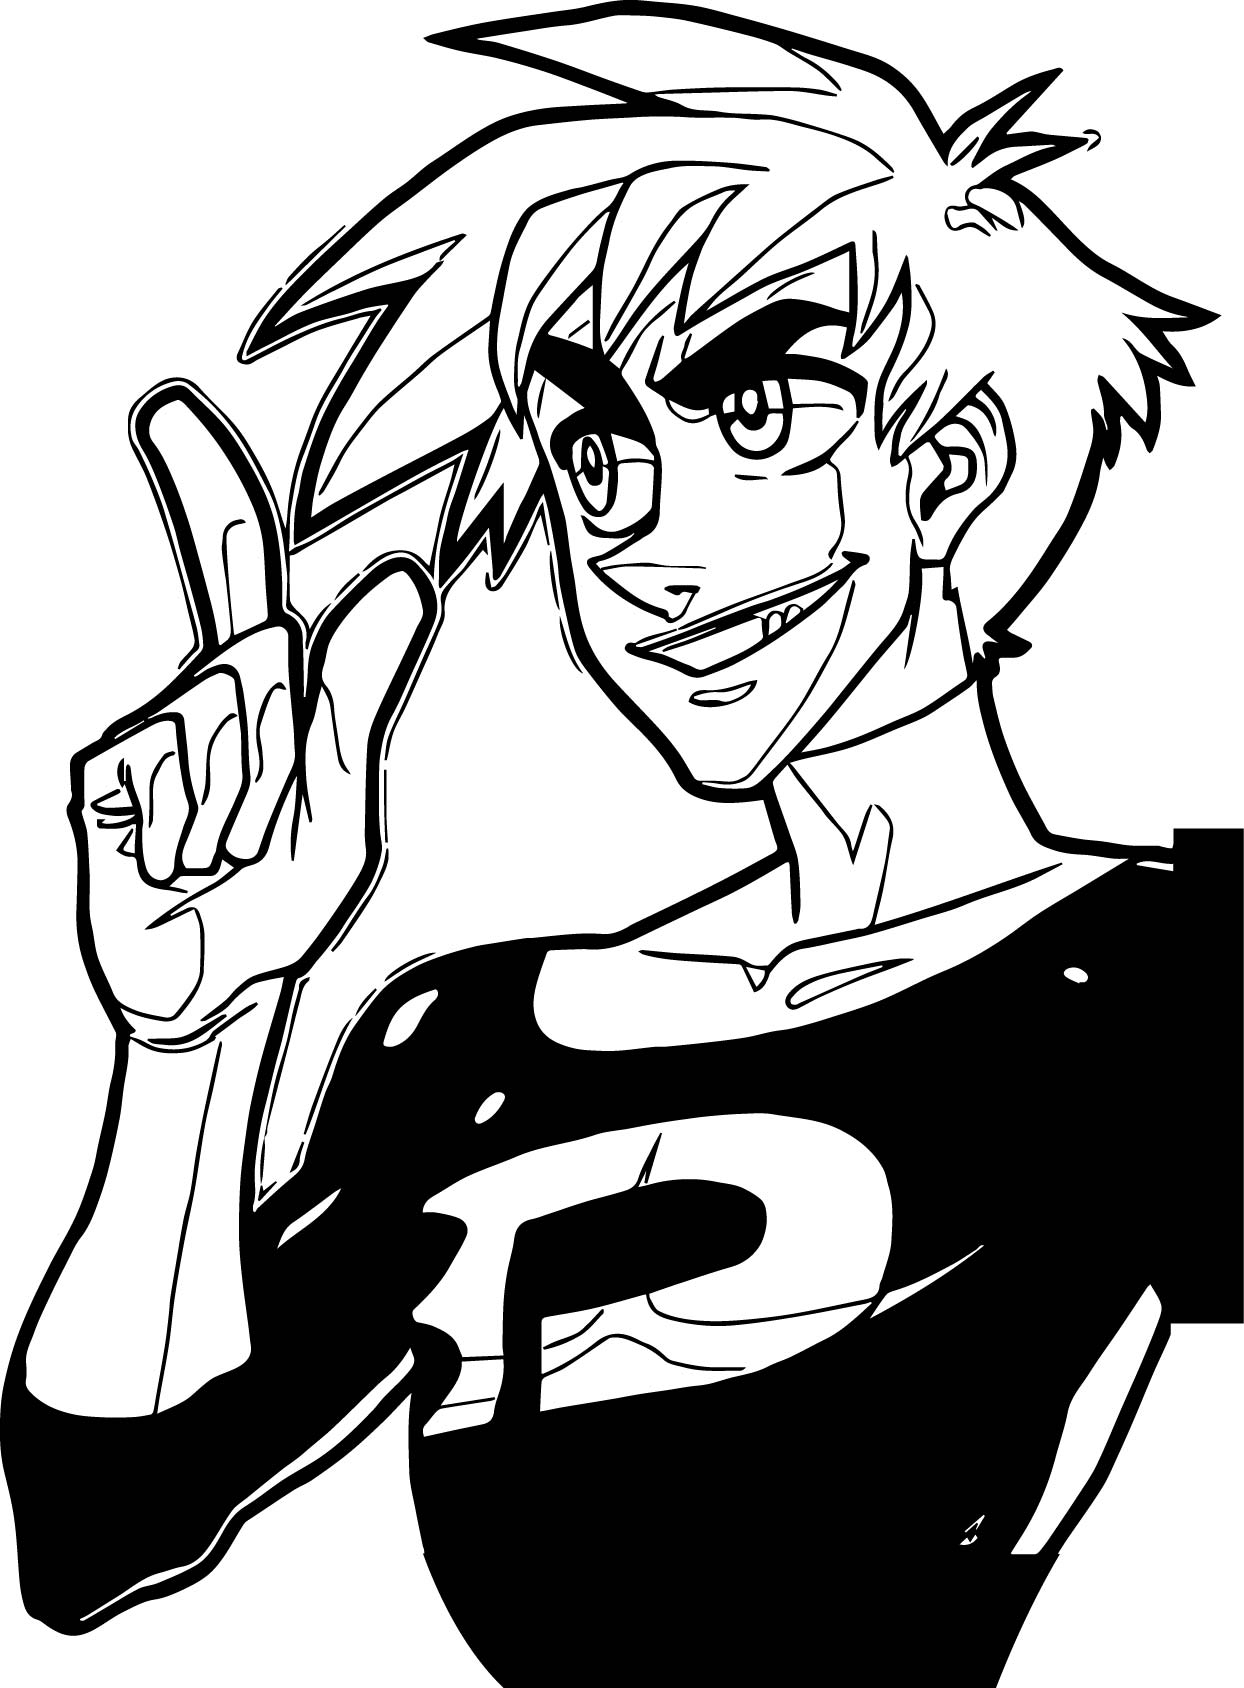 Danny Phantom One Coloring Page Wecoloringpage Com